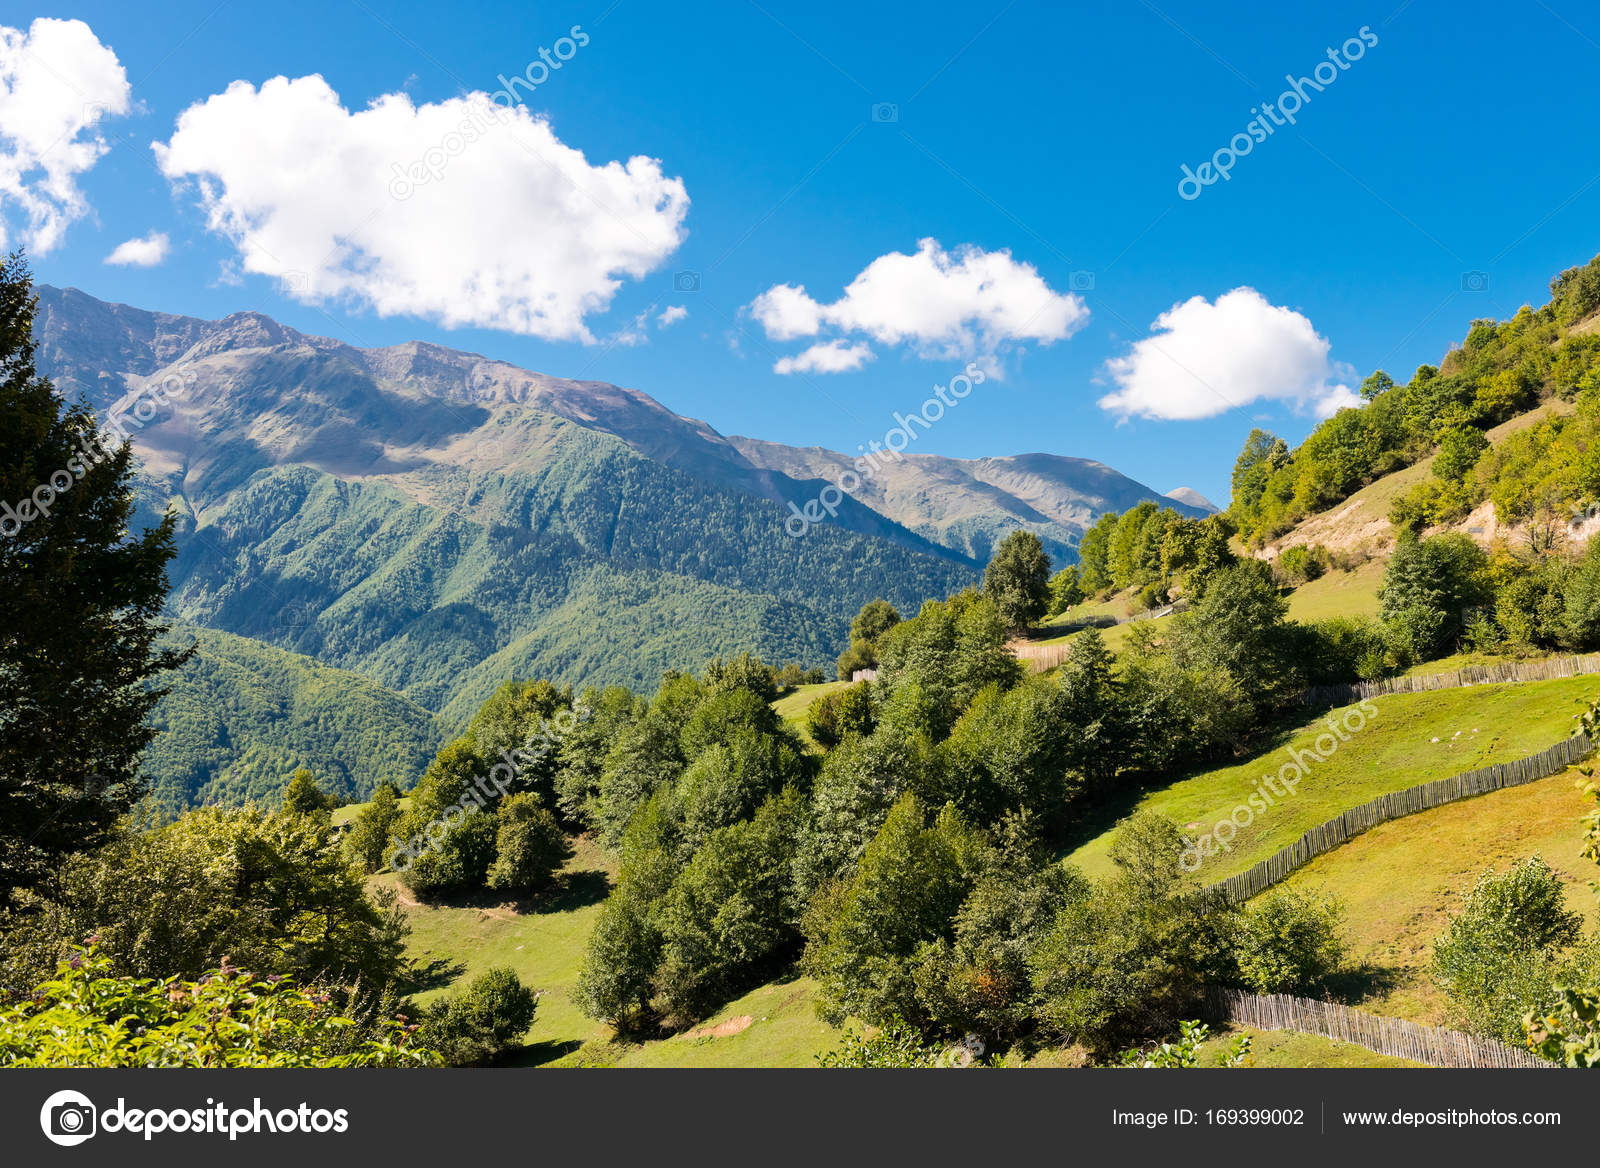 Georgia Georgian Police Stock Photos Georgia Georgian: Montagna, Paesaggio, Georgia